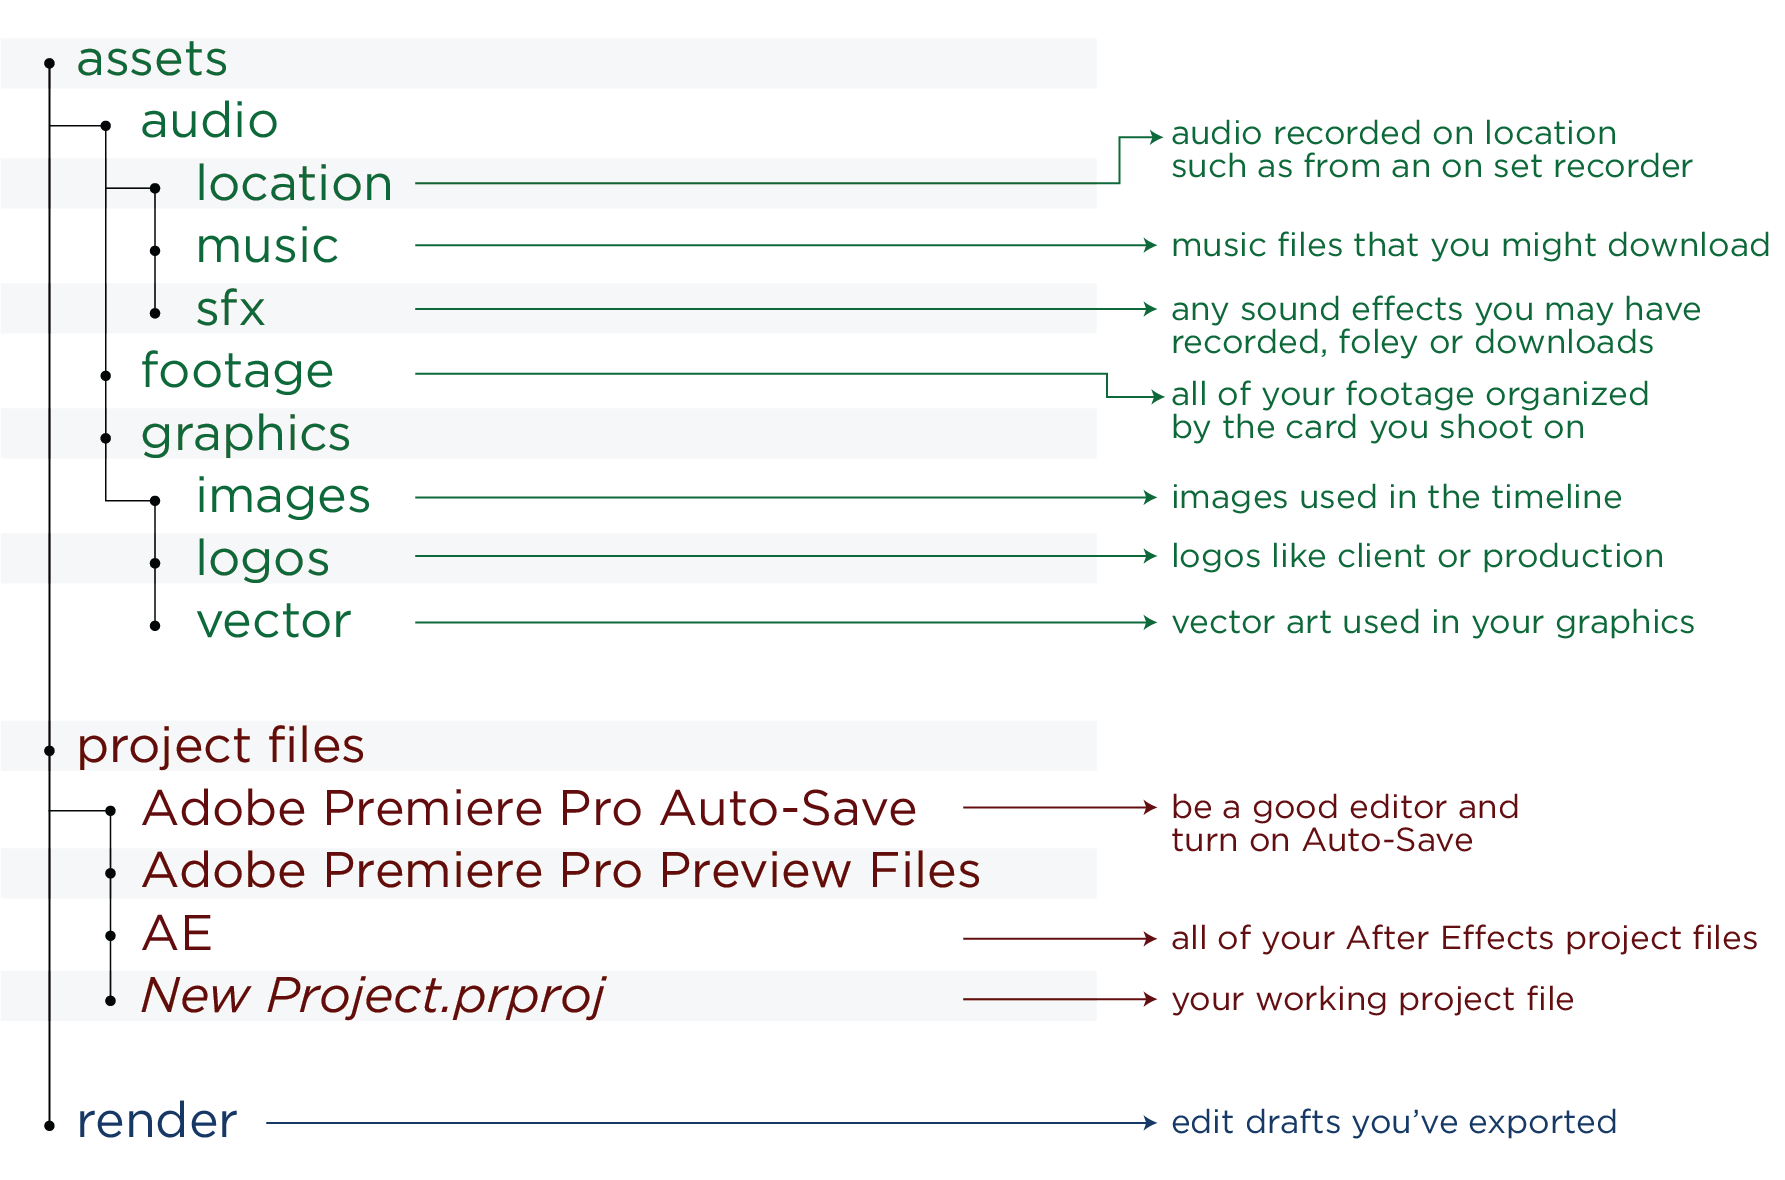 folder structure explained-01.png